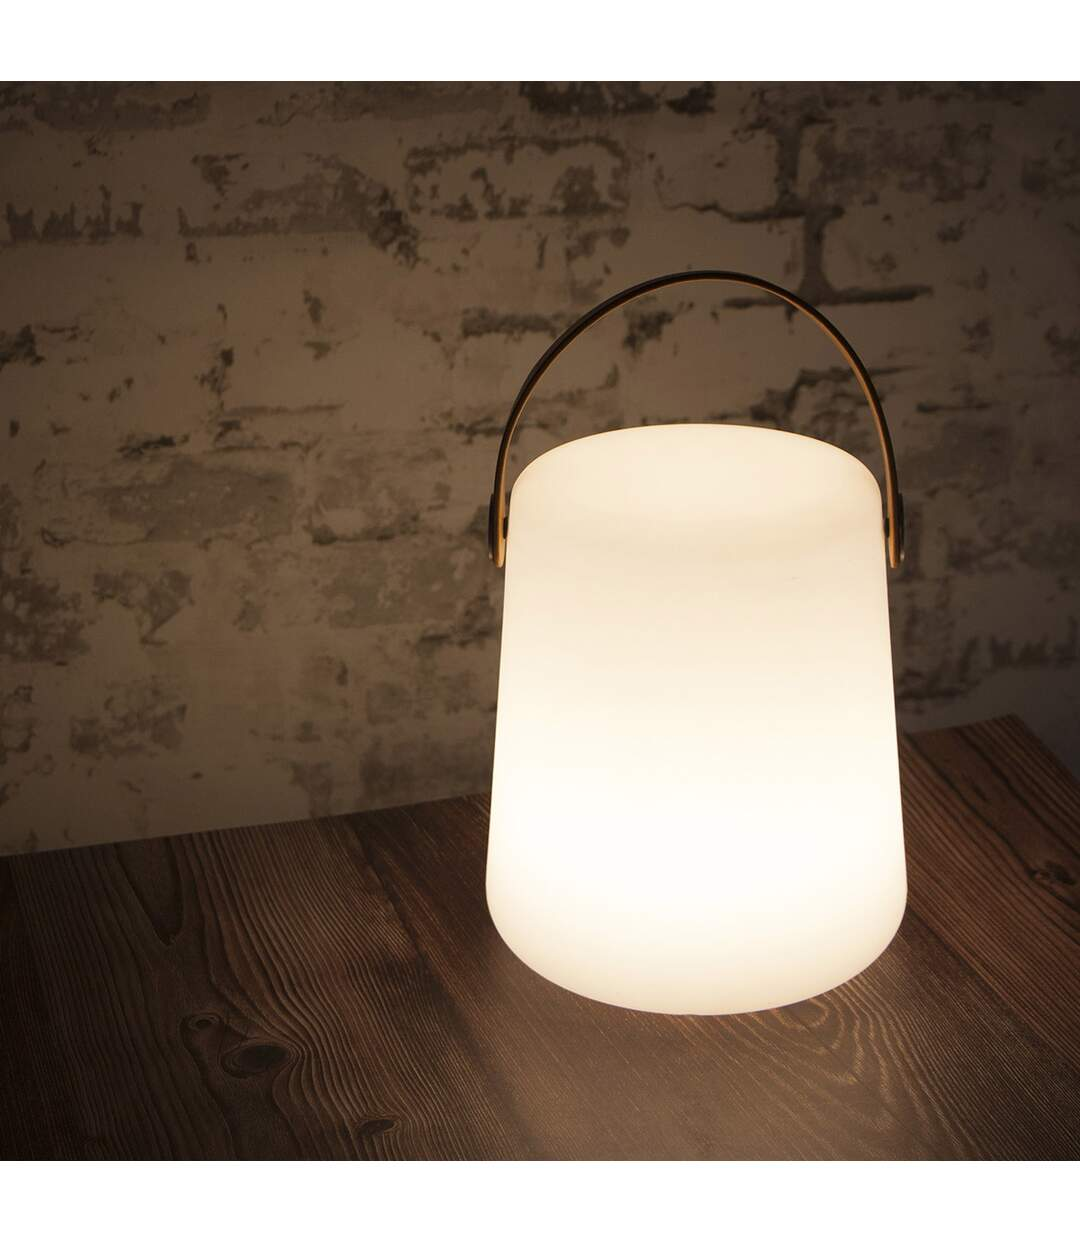 Lampe nomade 1W batterie lithium IP54